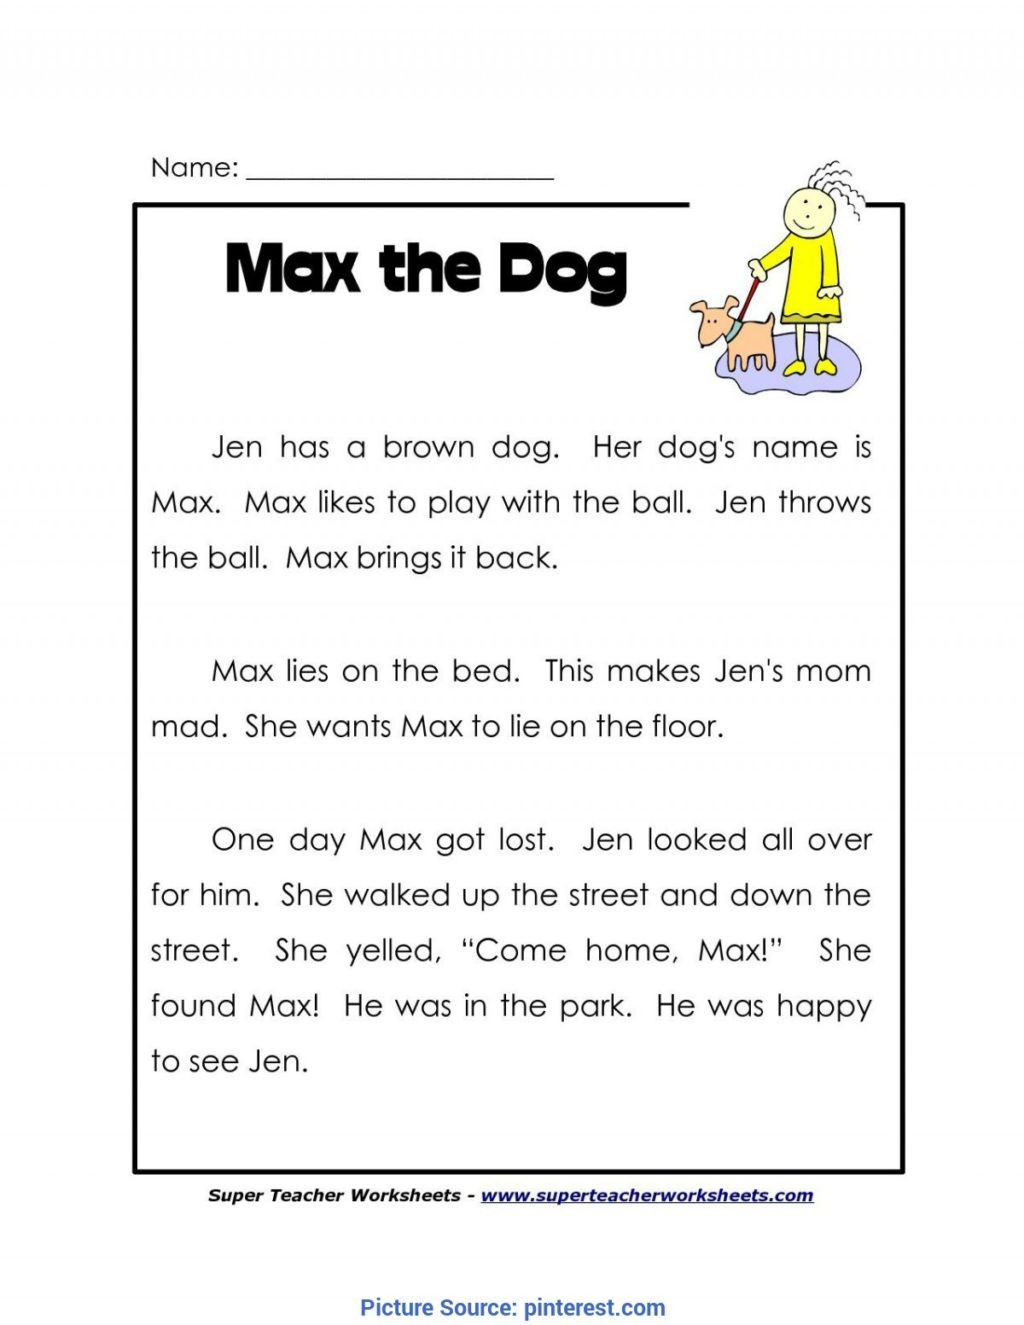 Free 7th Grade Reading Worksheets Business Math Word Problems Free Printable 6st Grade Math